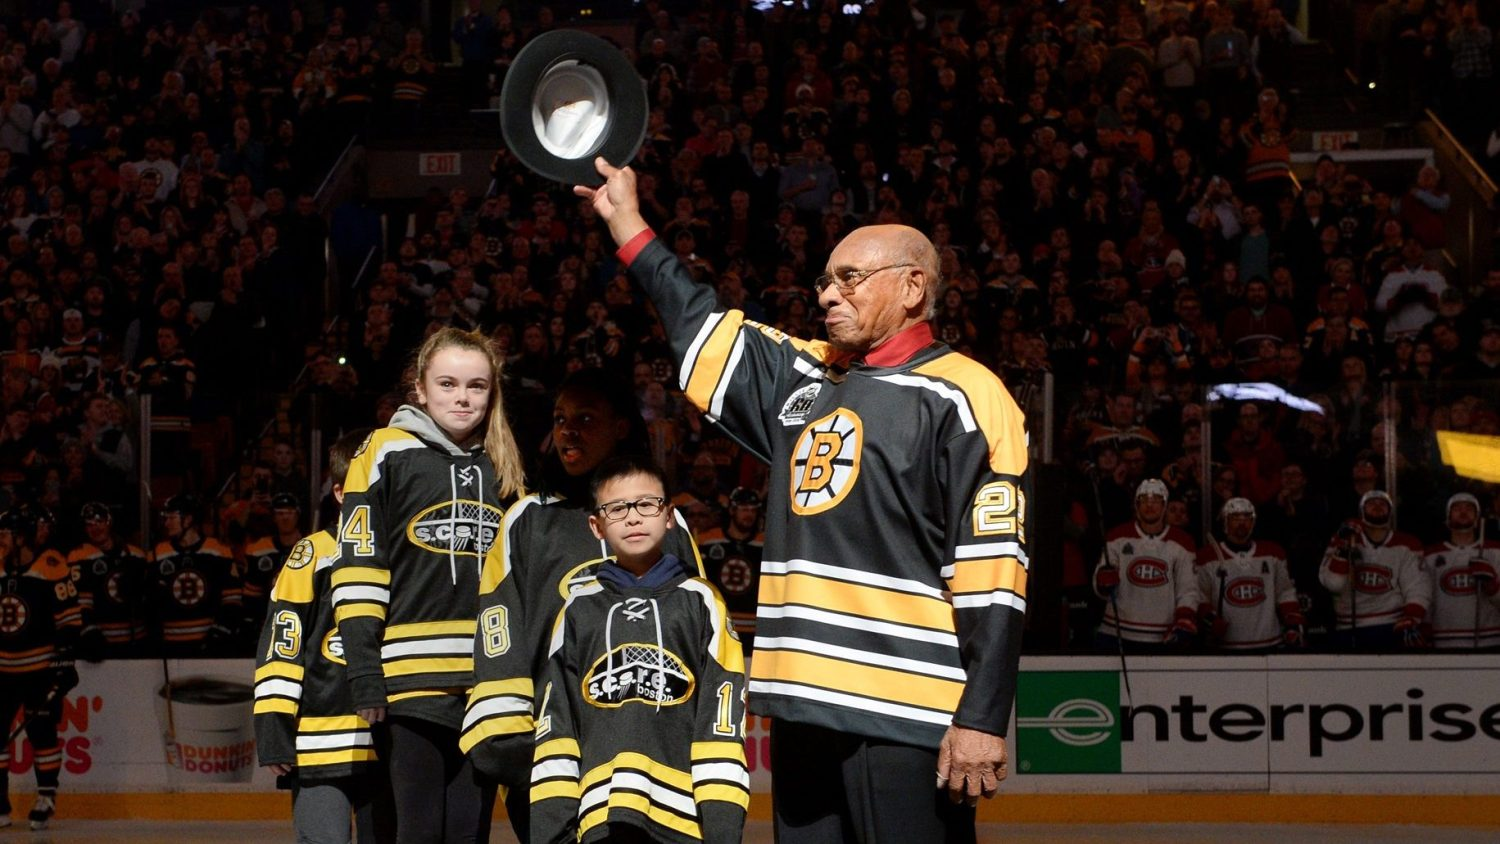 The players and circumstances that paved the way for Willie O Ree to break the  NHL s color barrier 60 years ago 5ce34e445